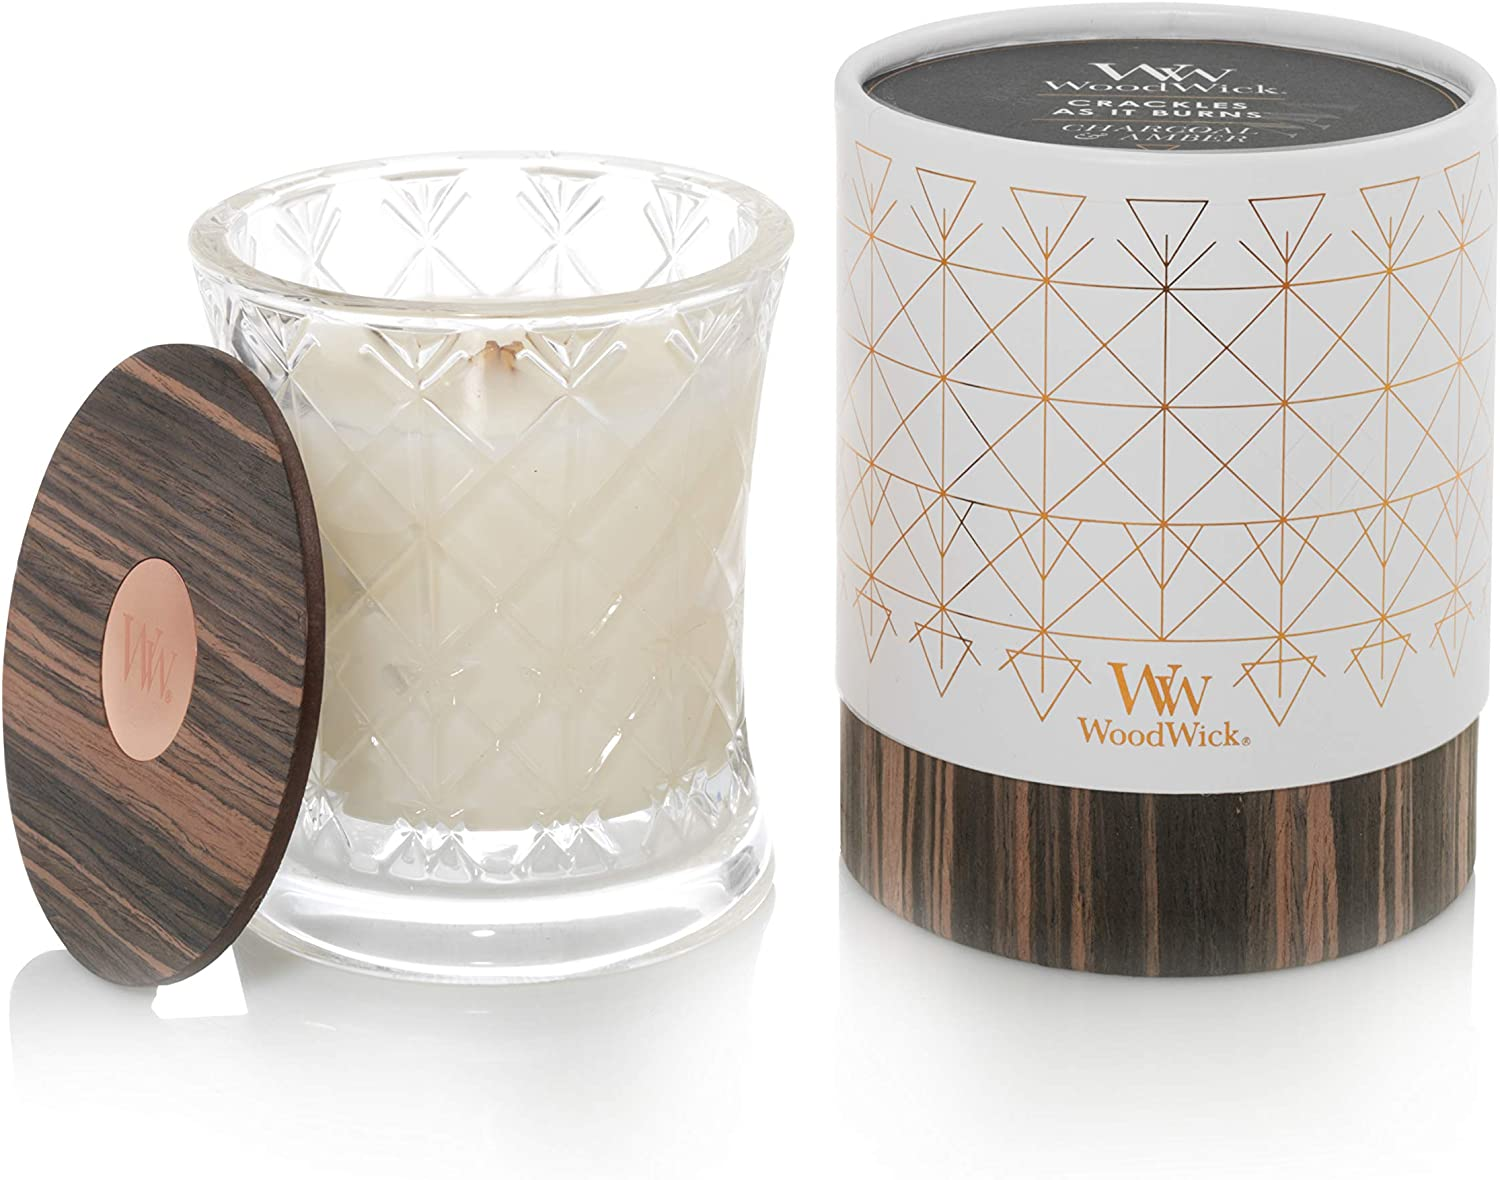 WoodWick Aura Charcoal & Amber Scented Candle Wood Candle Wick 9.7 oz. Glass Jar Candle